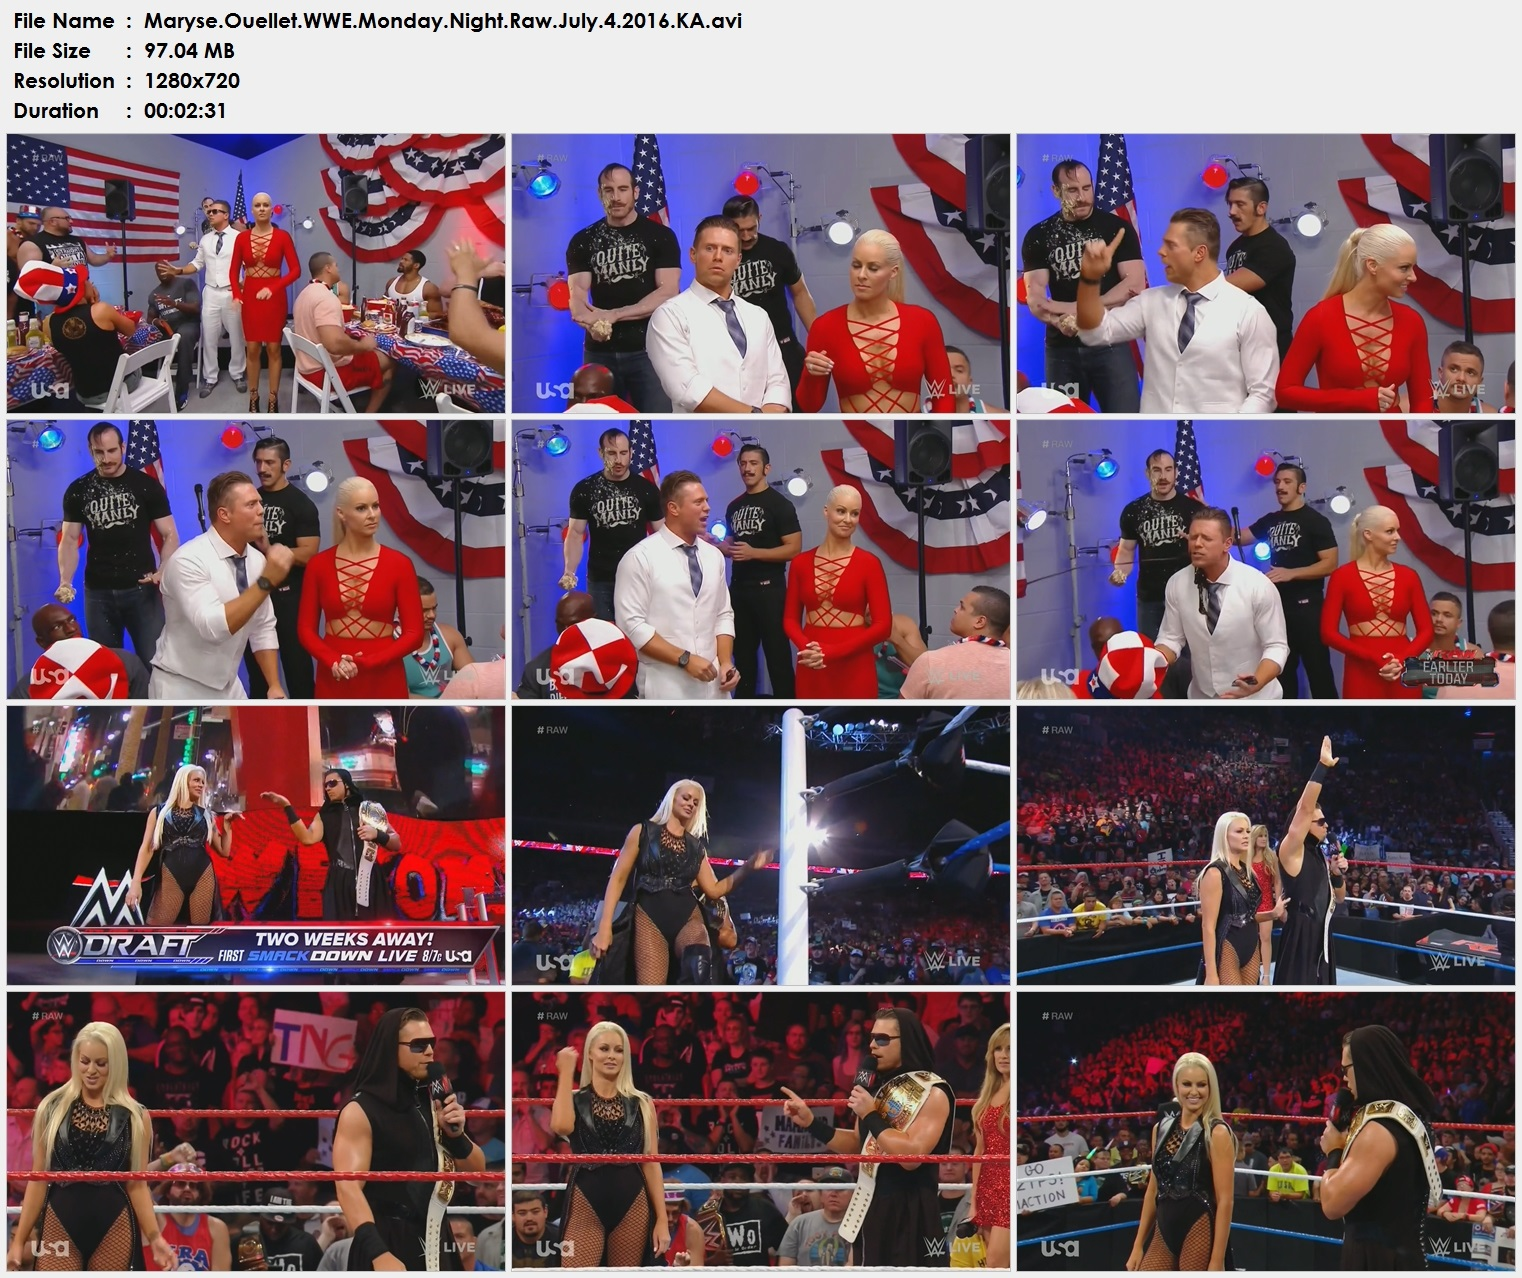 Maryse.Ouellet.WWE.Monday.Night.Raw.July.4.2016.KA.avi